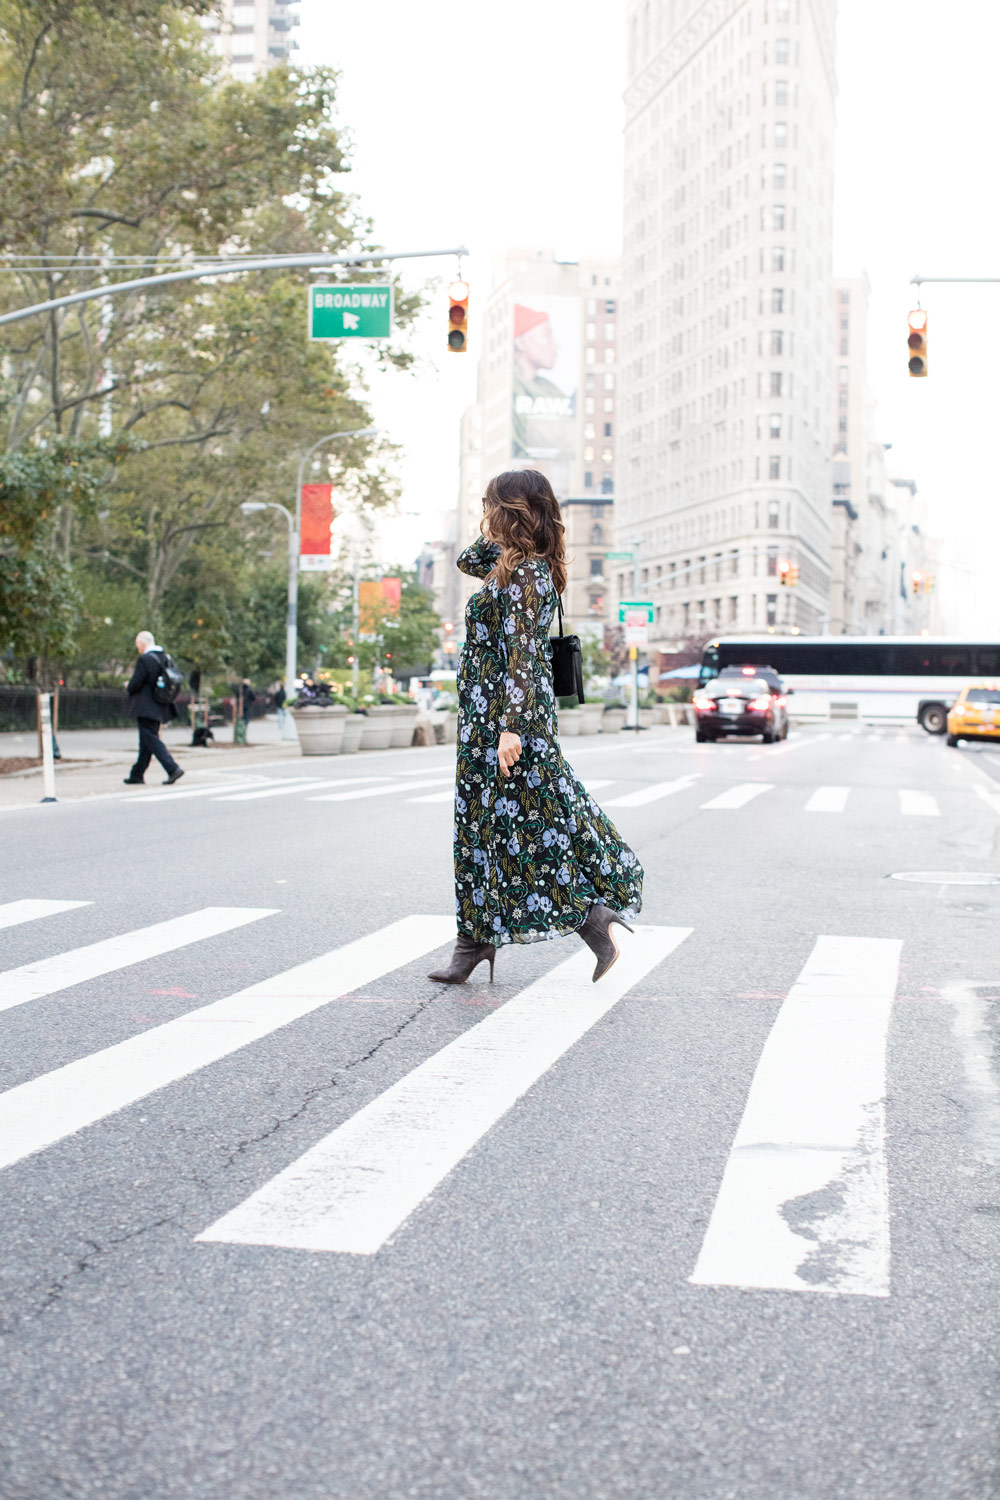 floral-dress-banana-republic-worth-new-york-fall-style-corporate-catwalk-joie-suede-boots-new-york-city-fashion-blogger-3